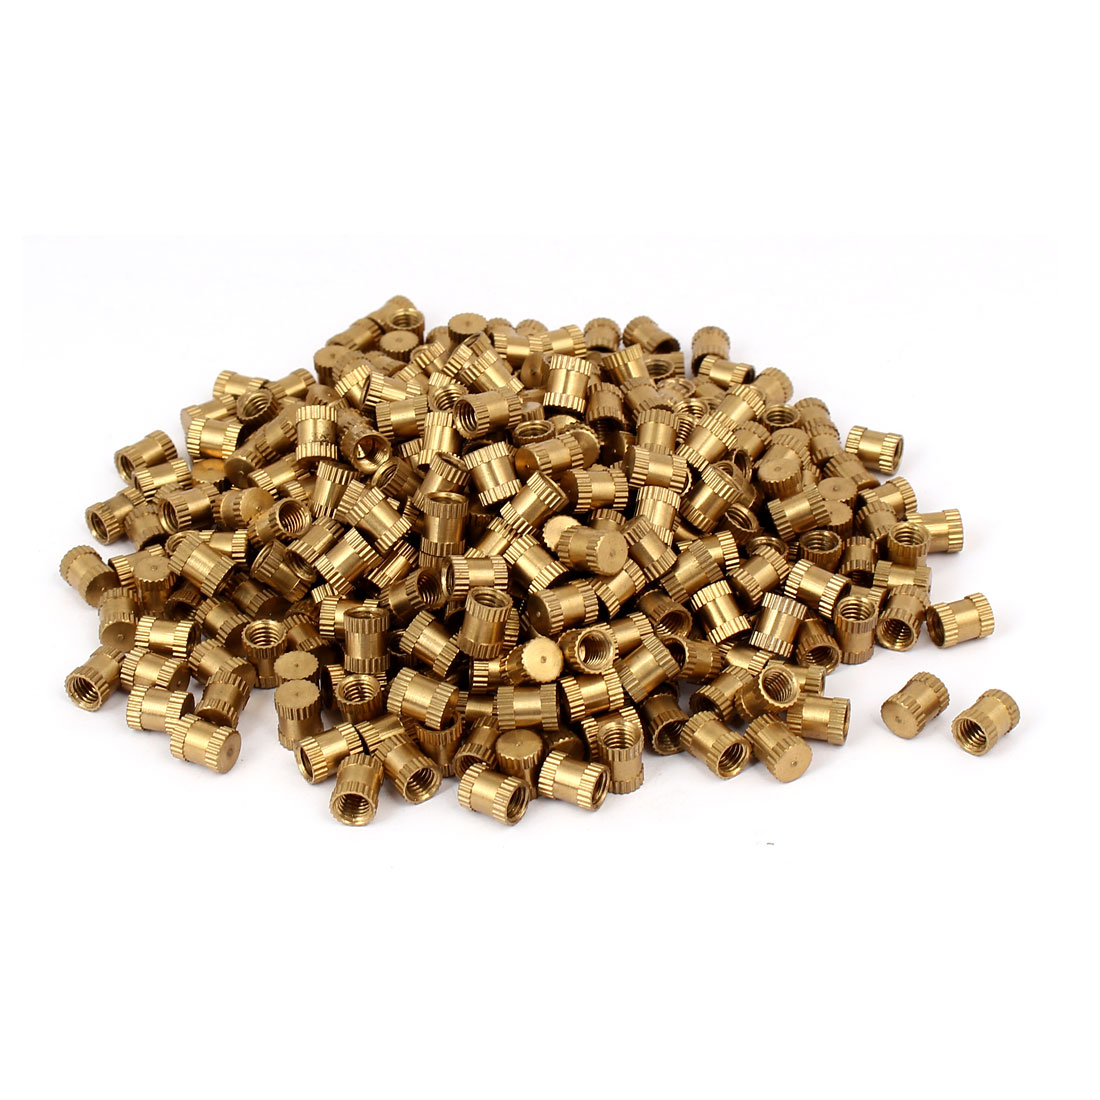 M5 x 8mm 6.5mm OD Brass Threaded Insert Embedded Knurled Thumb Nut 500PCS